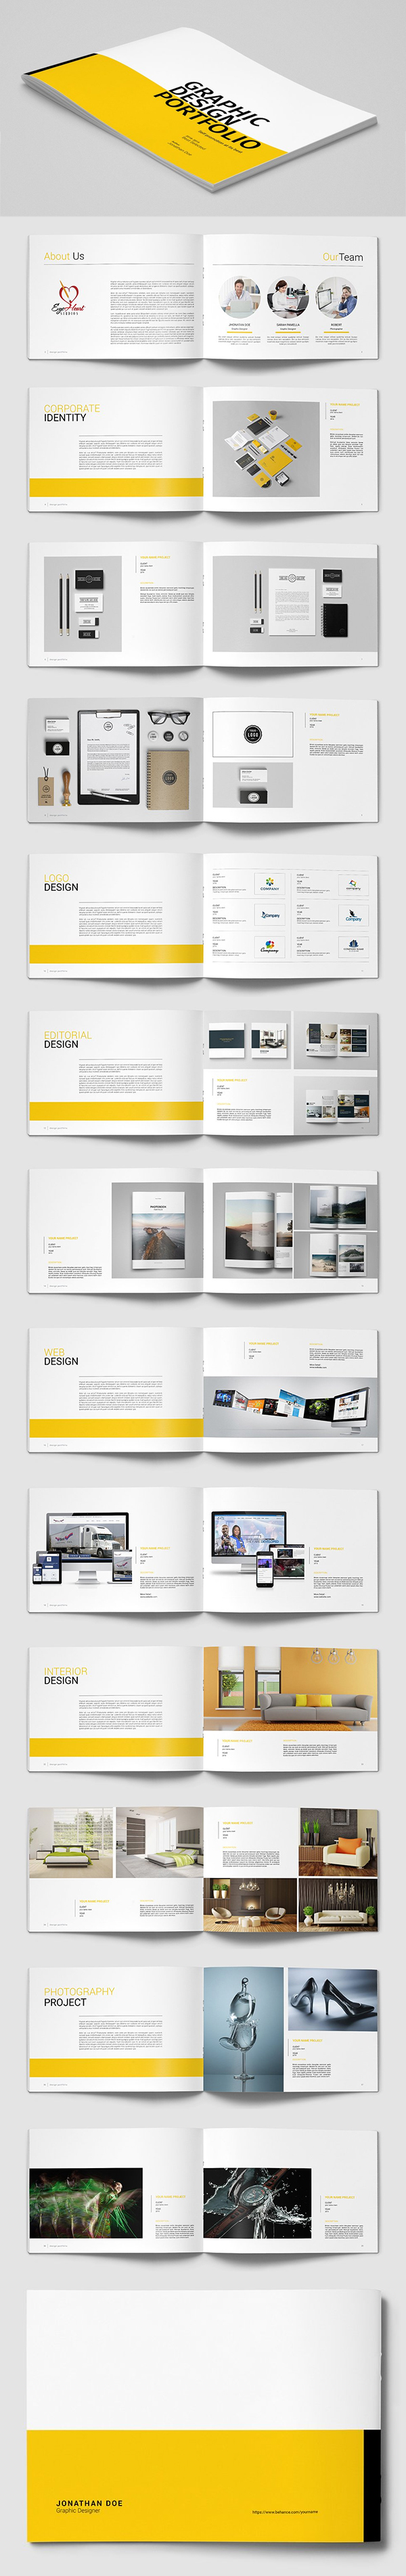 Graphic Design Portfolio Catalog Brochure Template